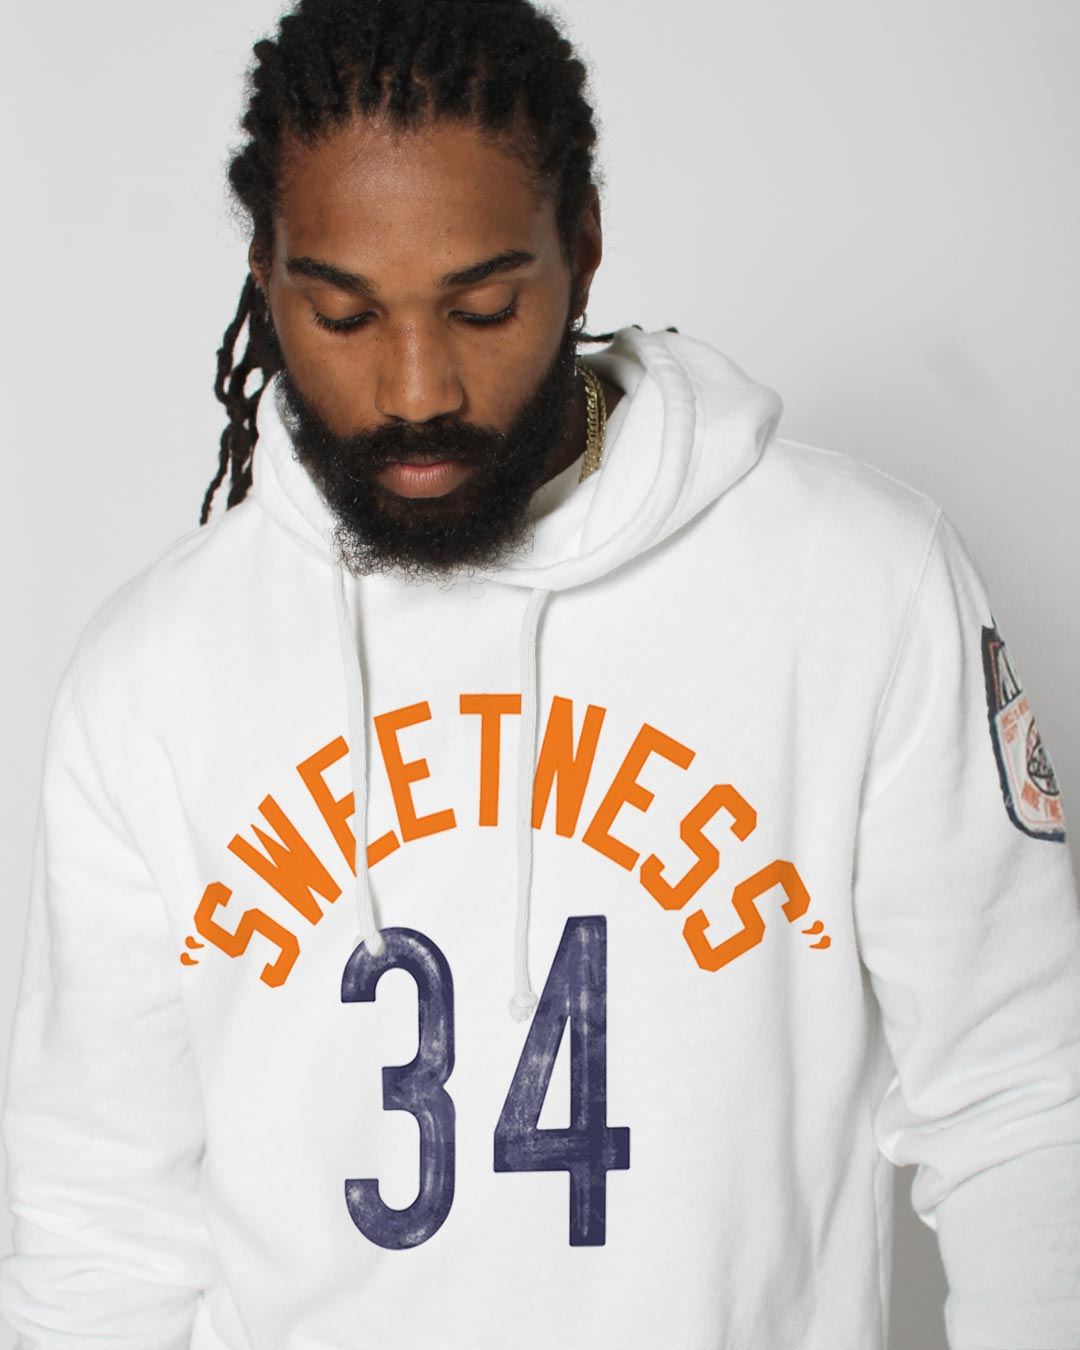 Walter Payton Sweetness #34 Pullover Hoody - Roots of Inc dba Roots of Fight